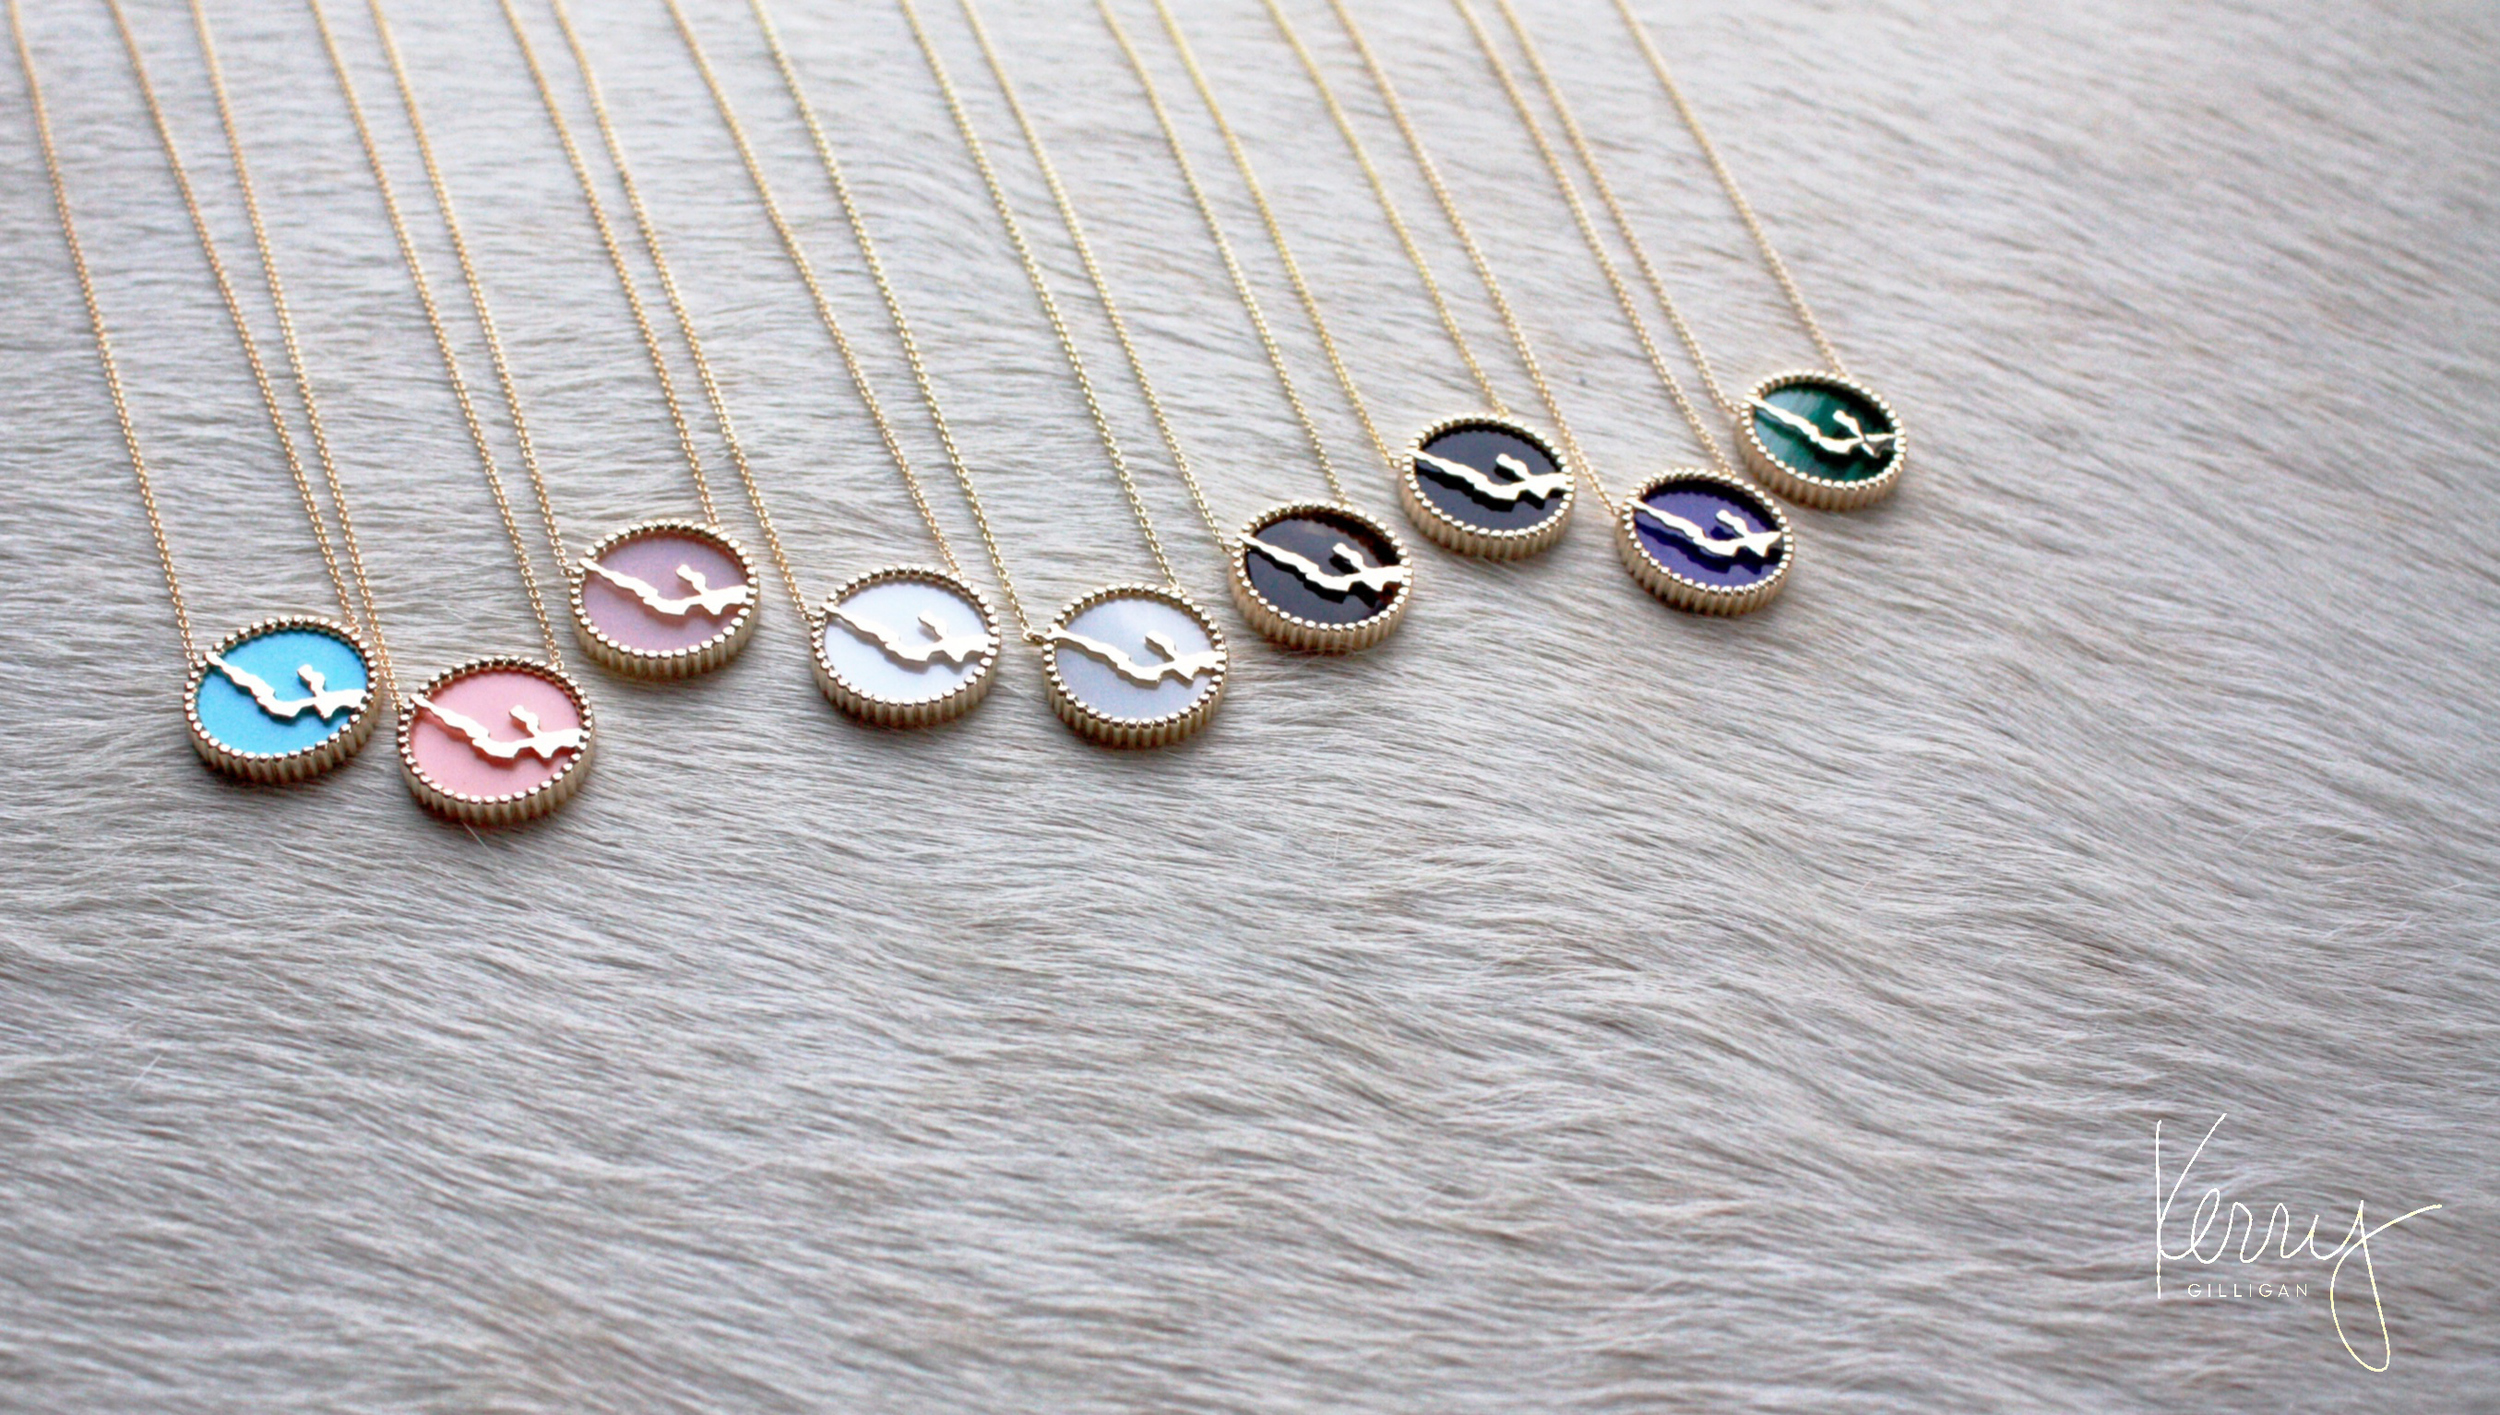 interchangeable lake necklaces by kerry gilligan